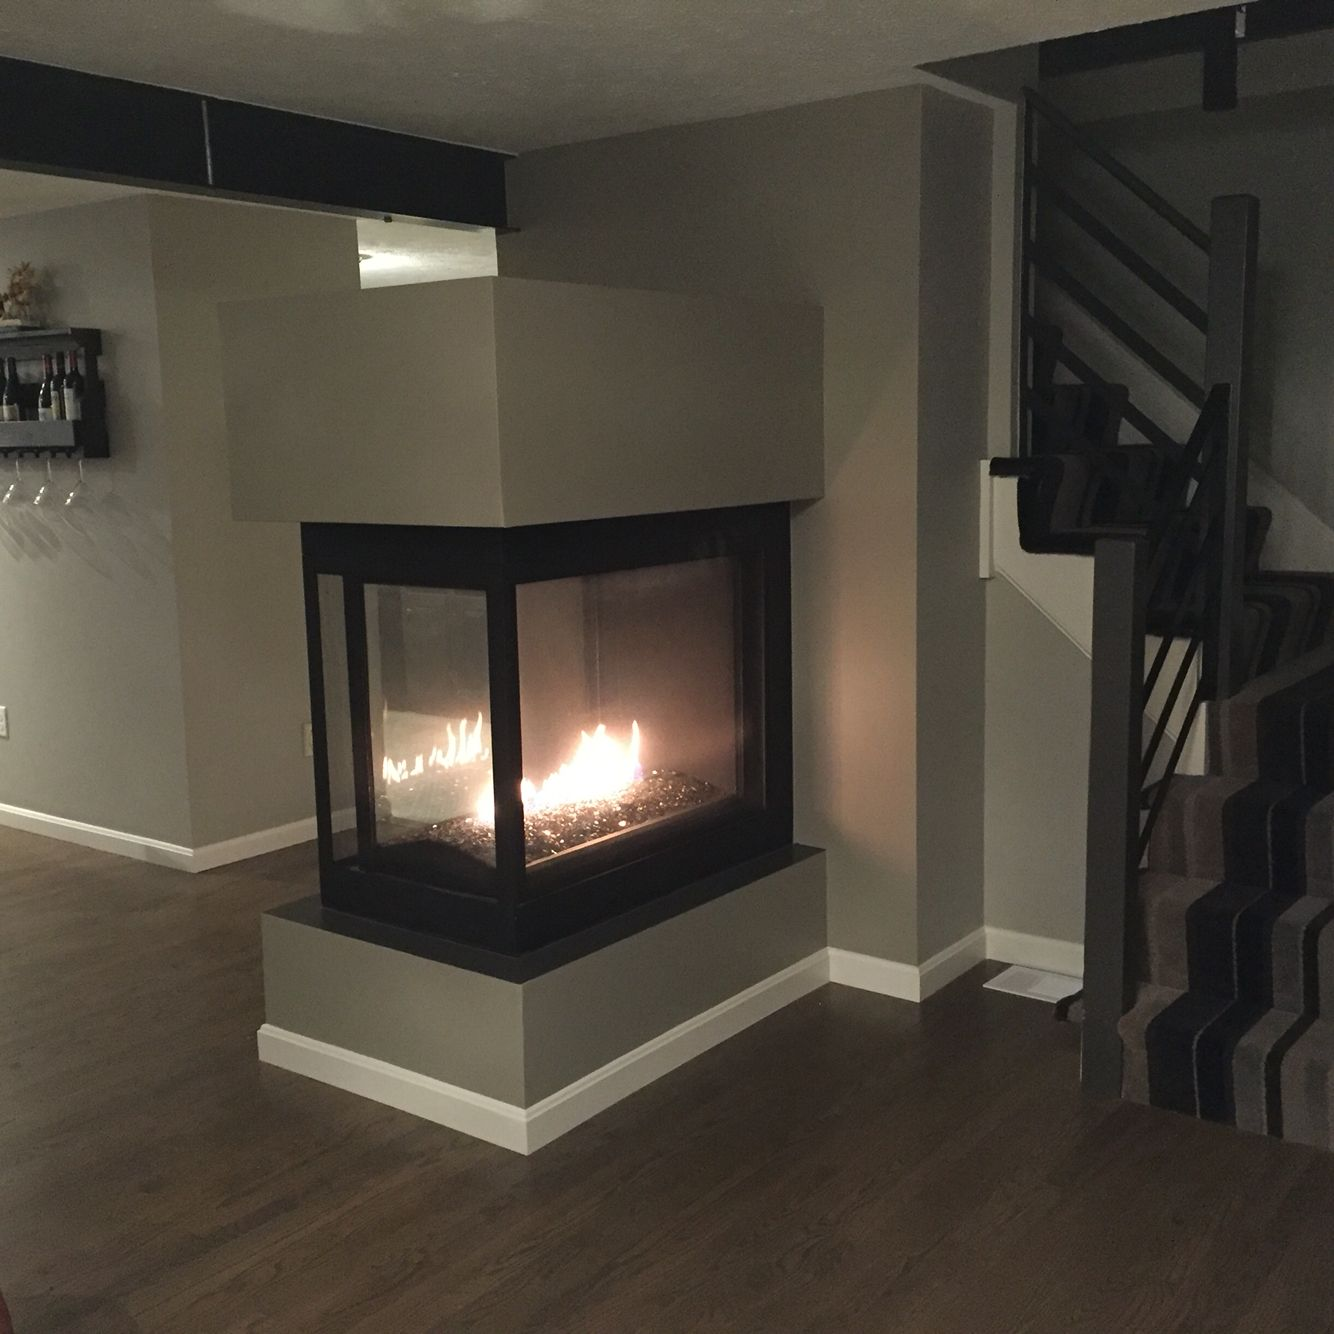 3 Sided Peninsula Propane Fireplace From Napolean We Re